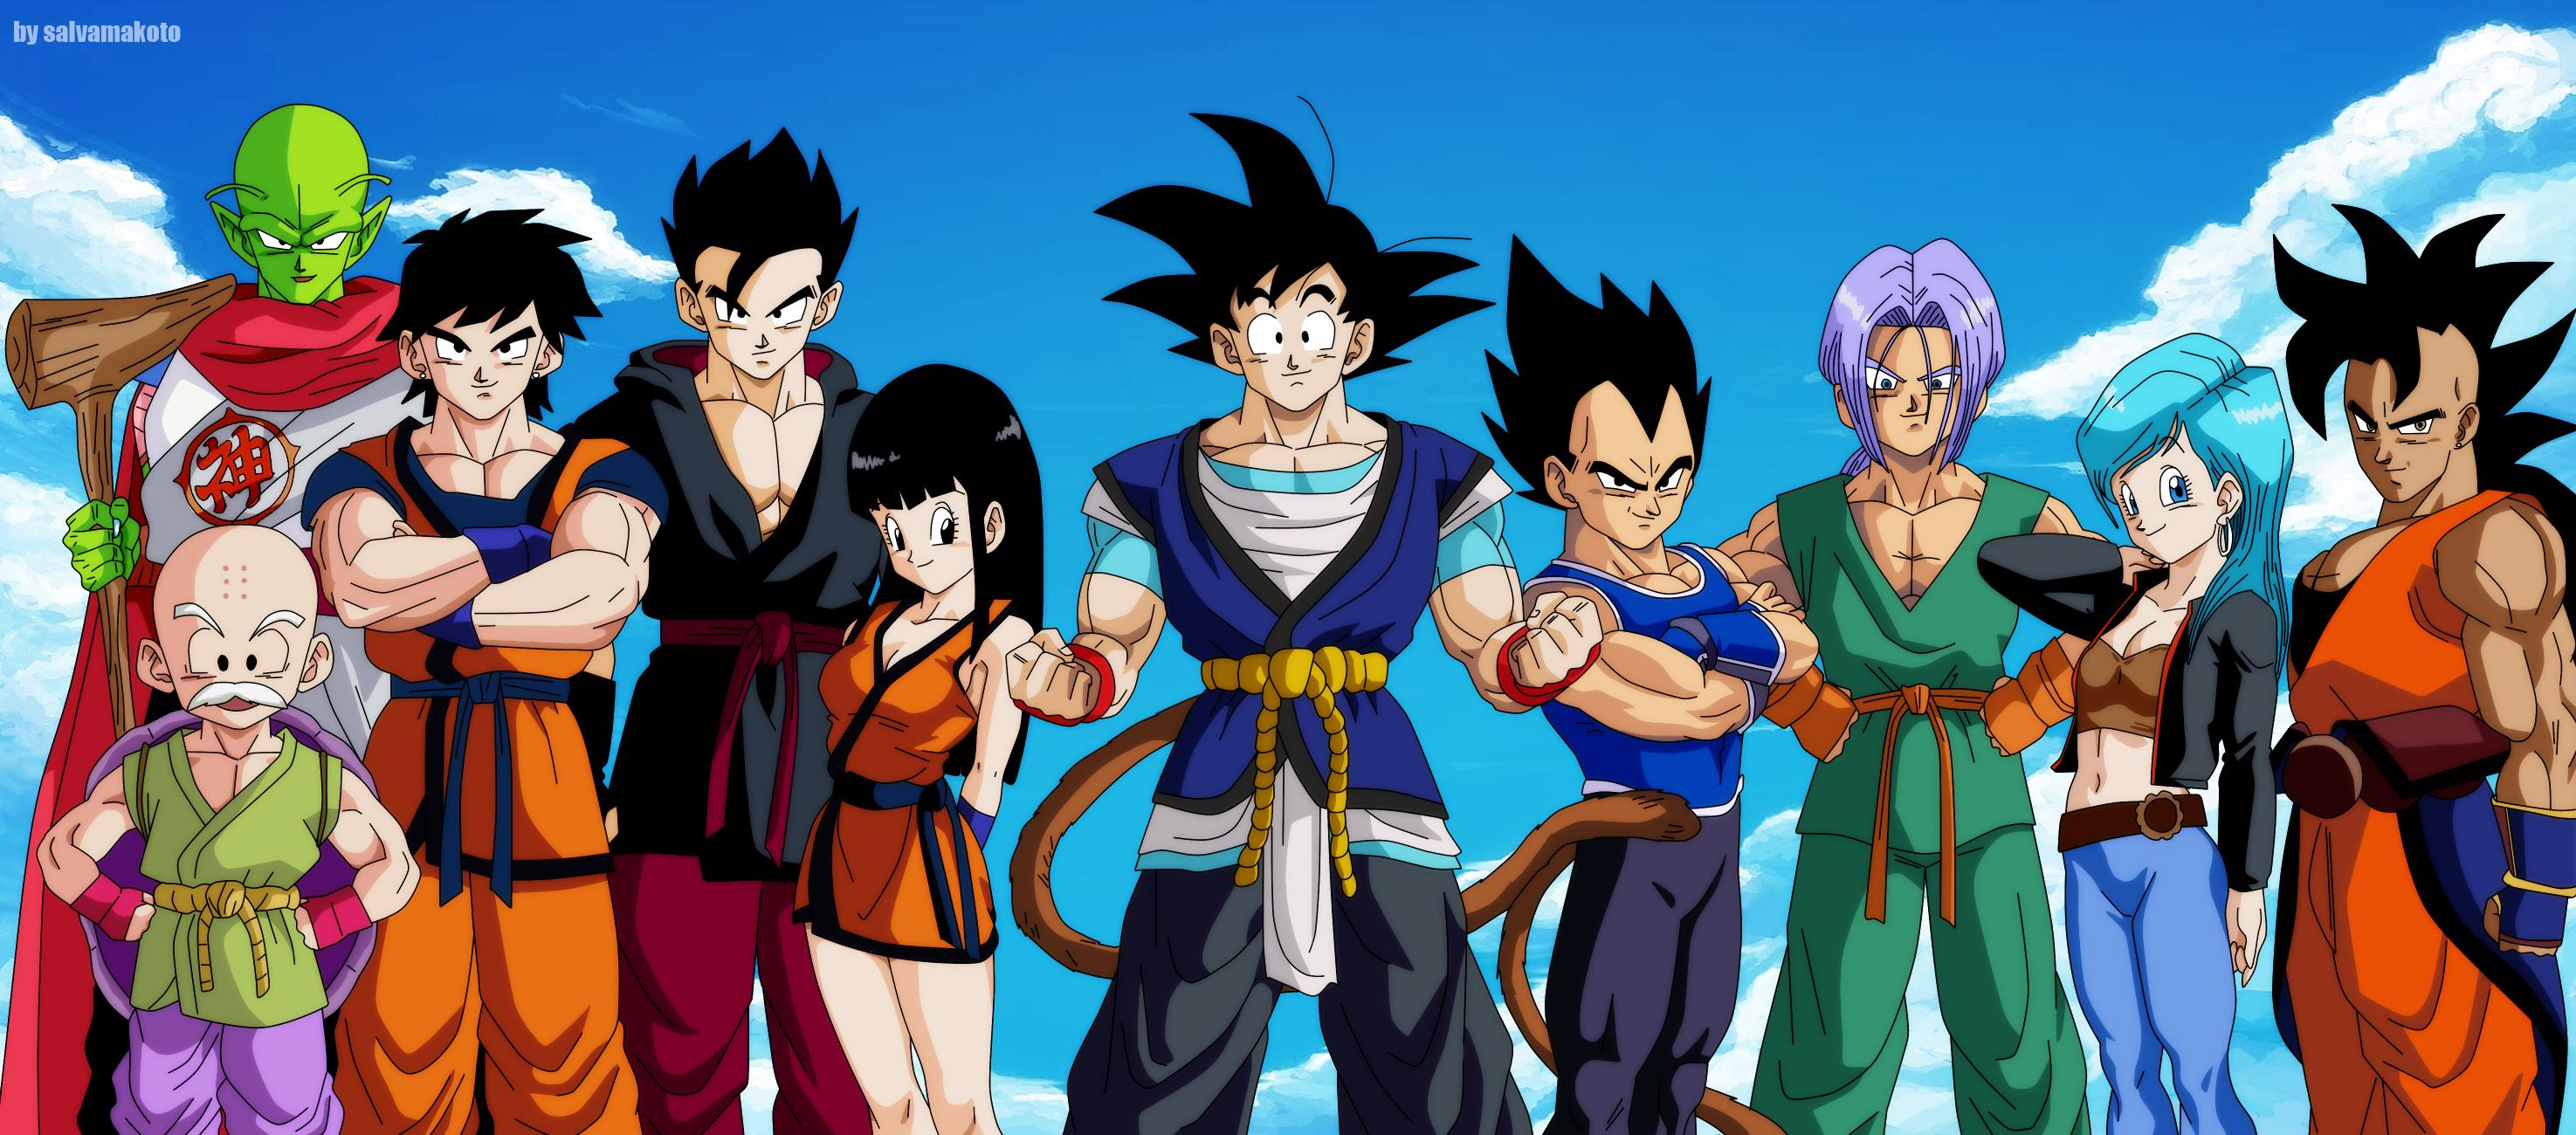 187 Gohan Dragon Ball Hd Wallpapers Background Images